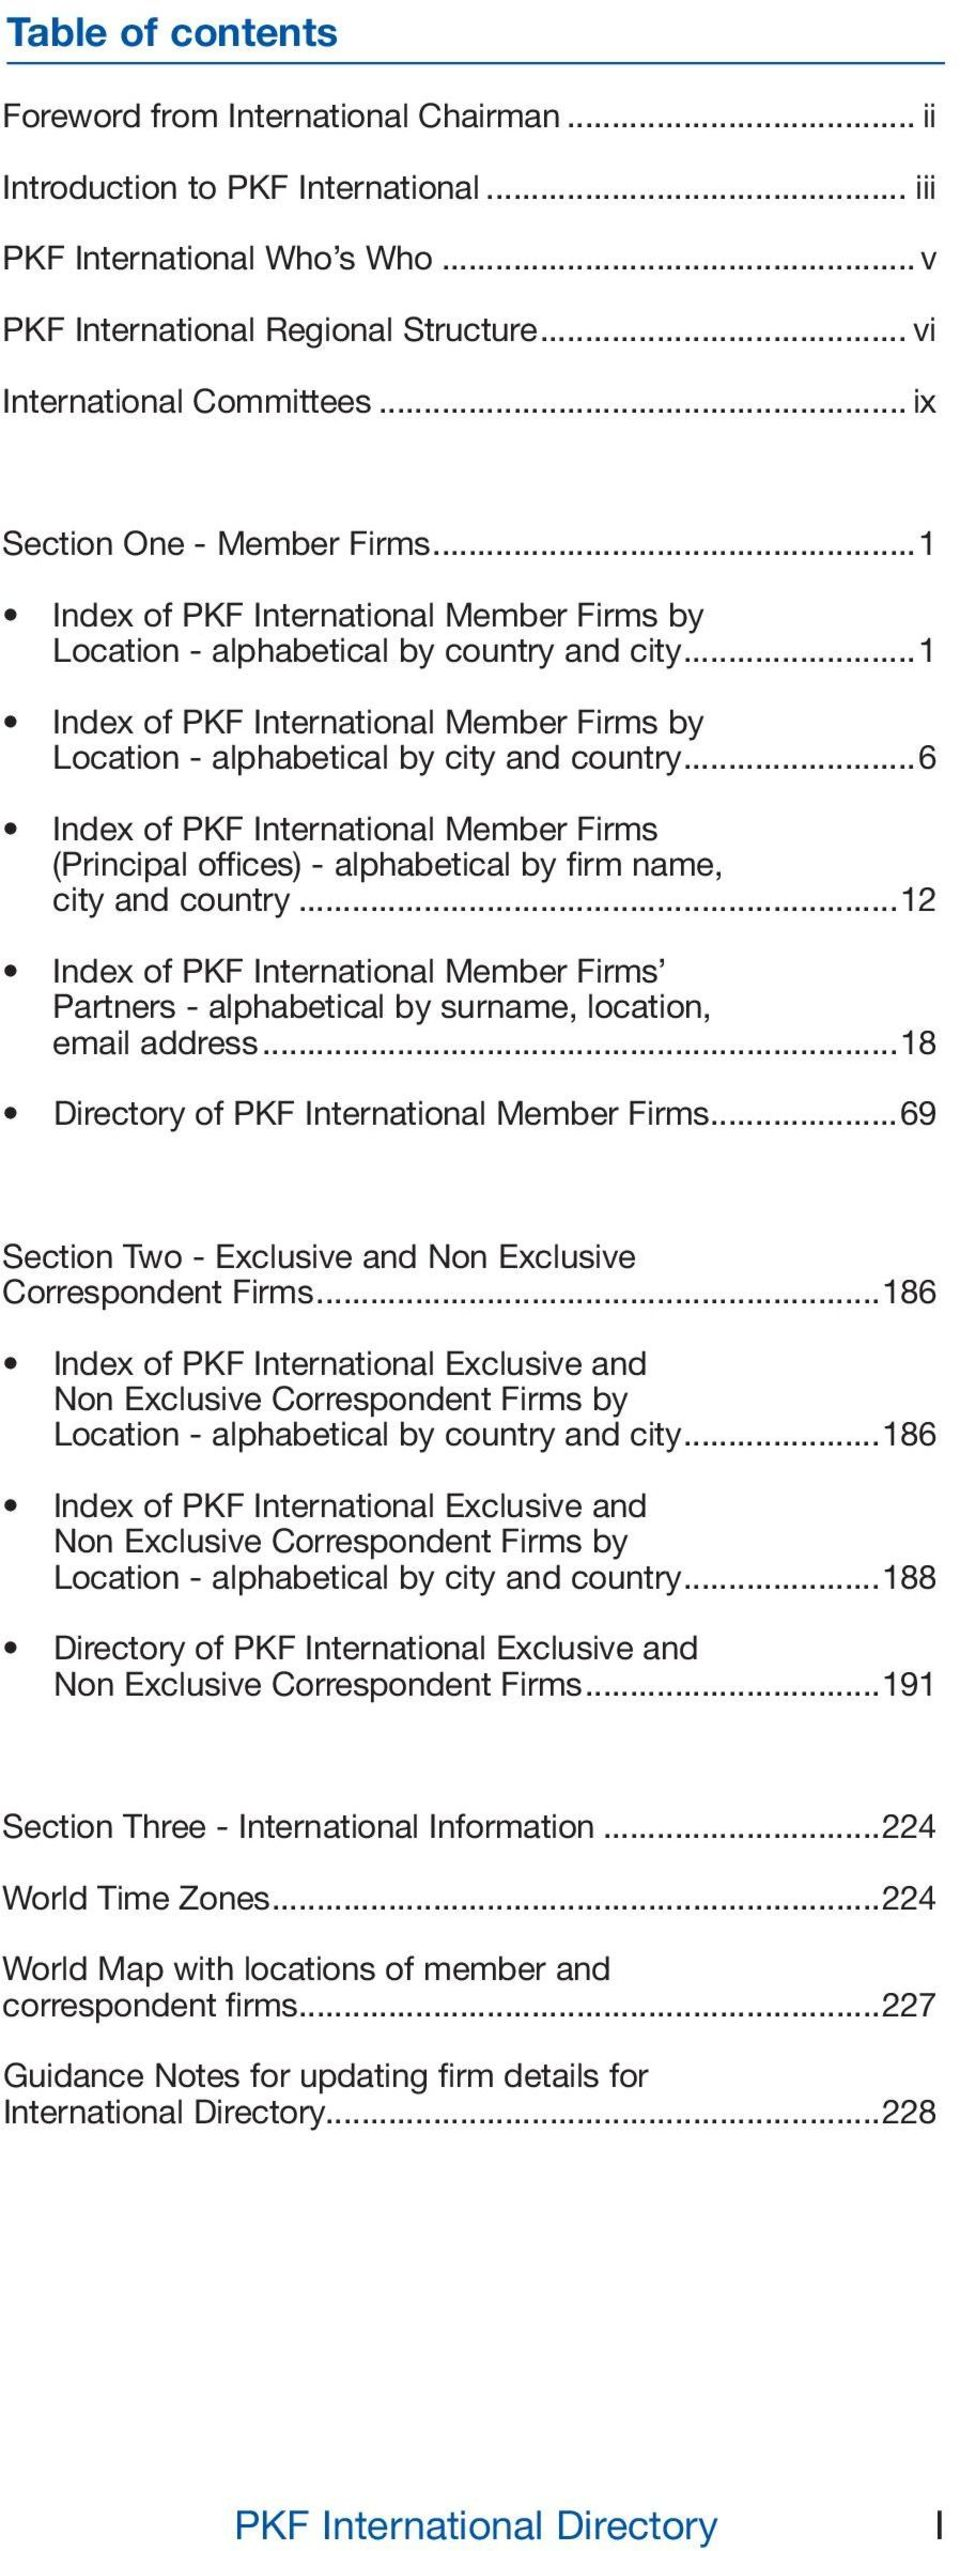 ..1 Index of PKF International Member Firms by Location - alphabetical by city and country...6 Index of PKF International Member Firms (Principal offices) - alphabetical by firm name, city and country.